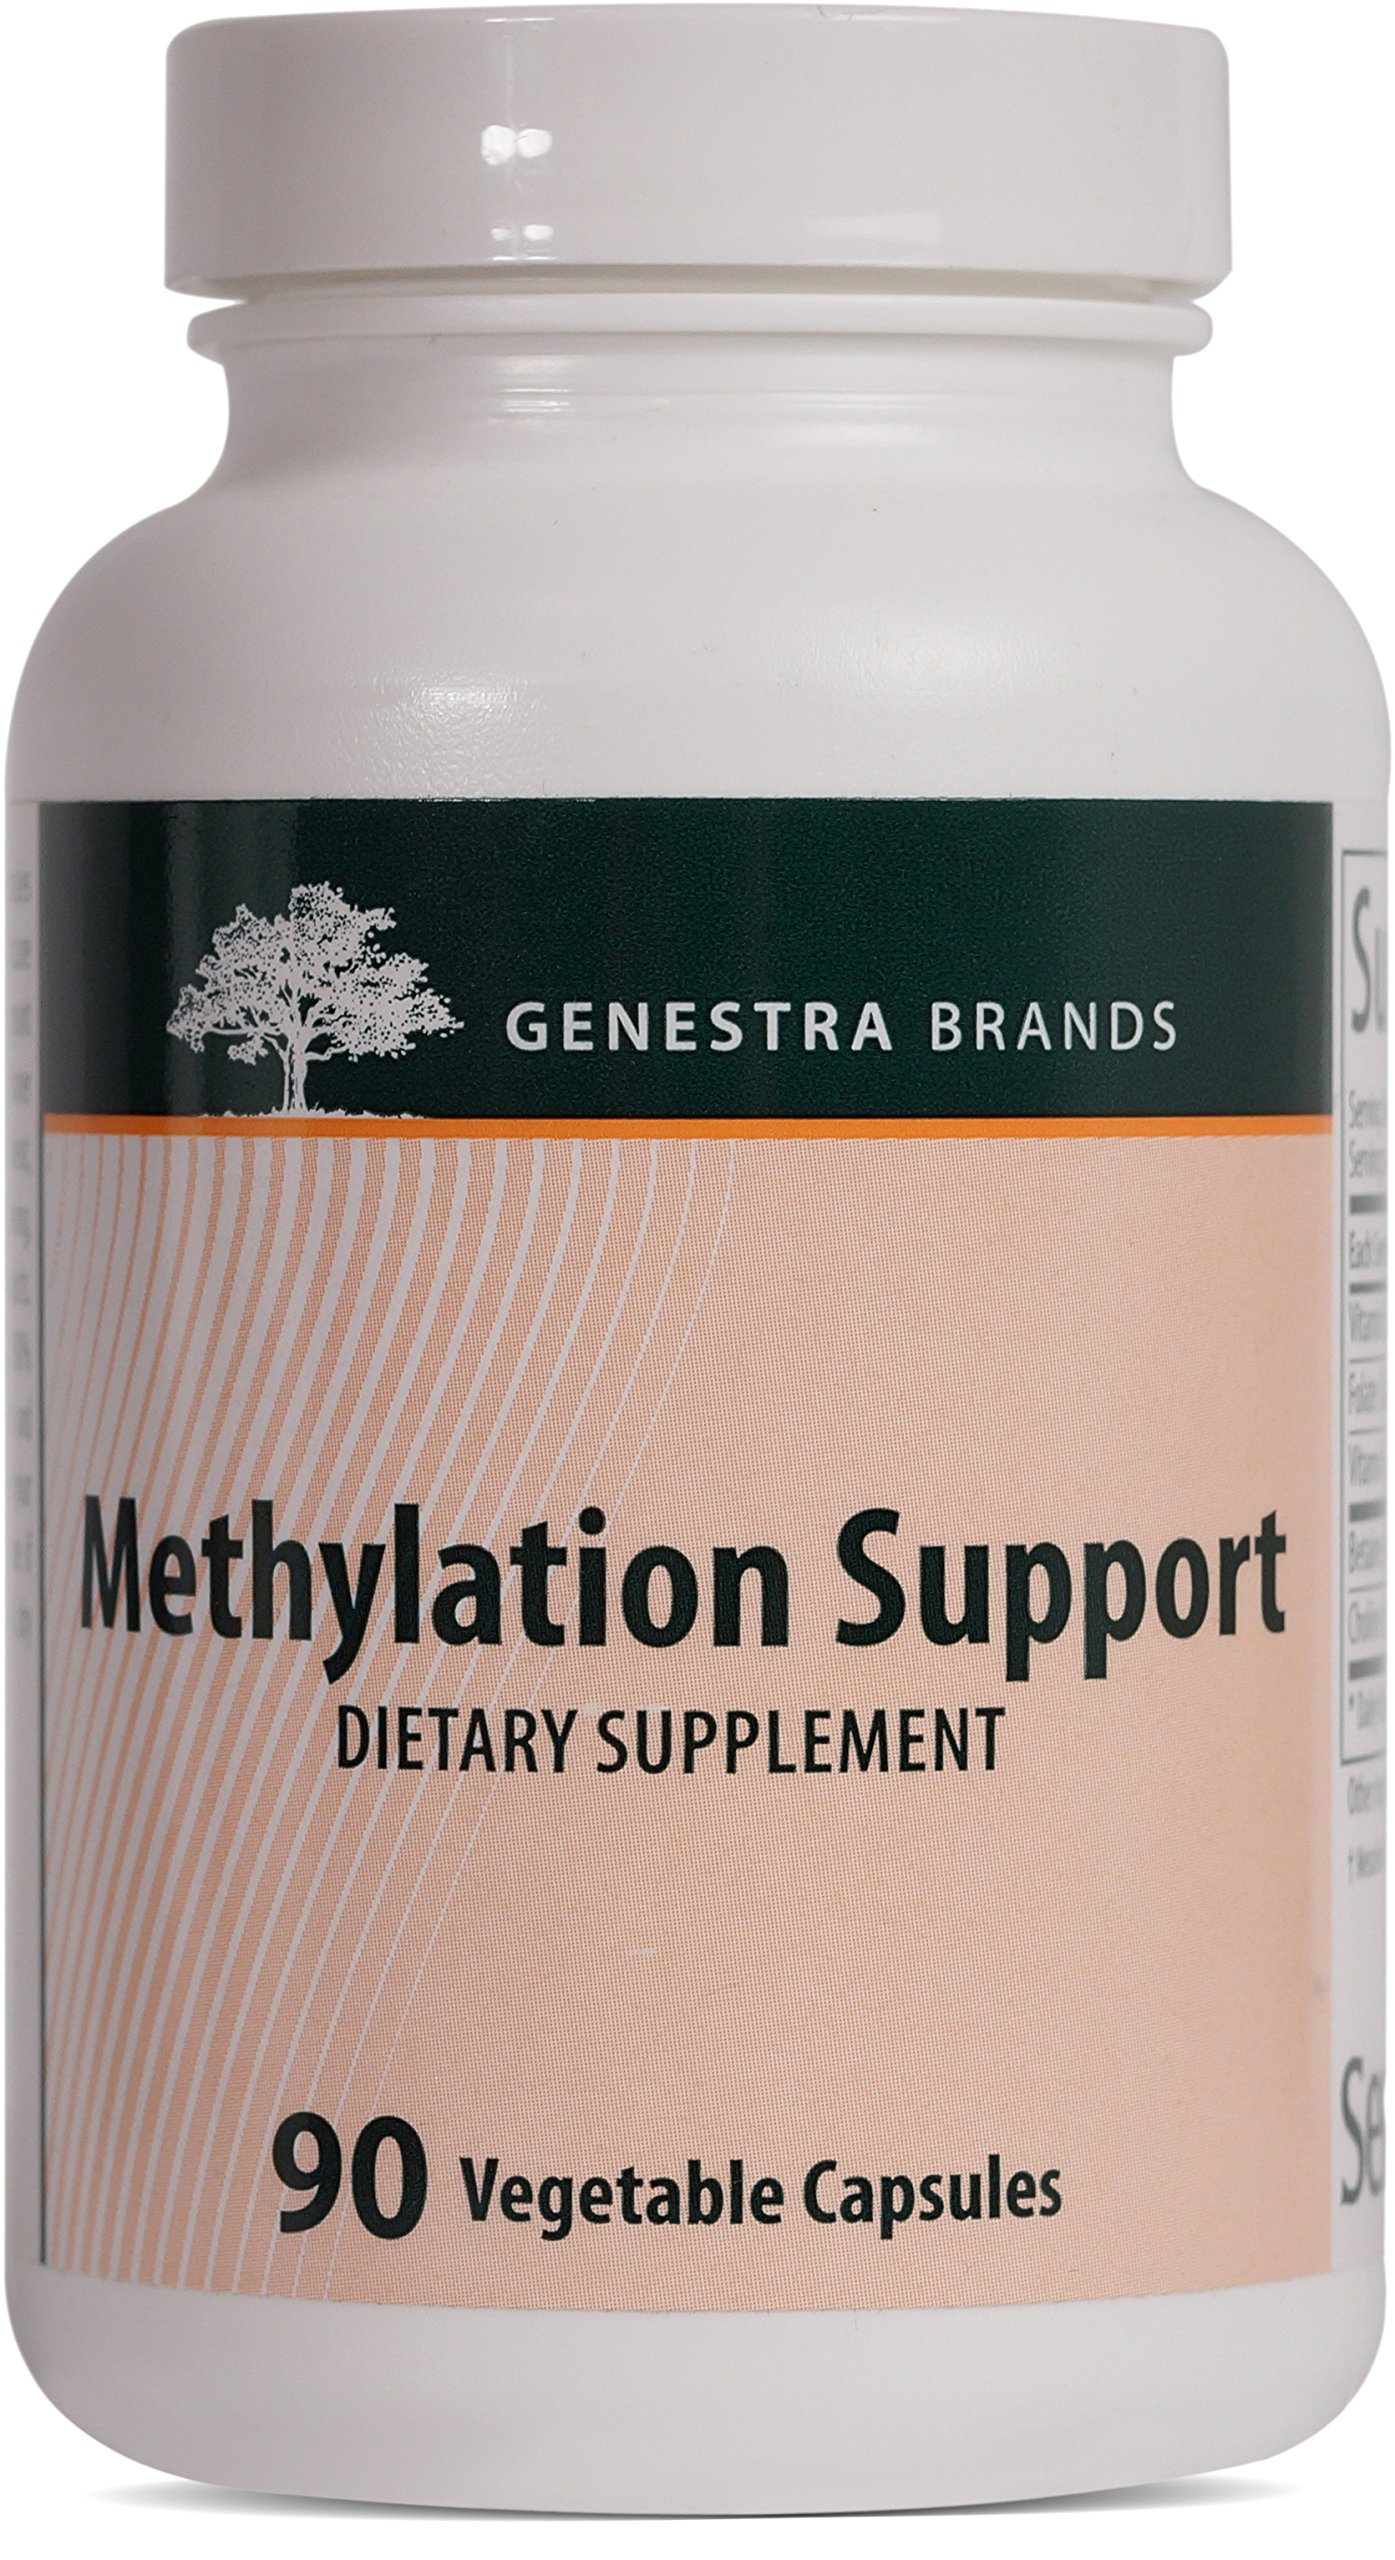 Genestra Brands - Methylation Support - Combination of Betaine, Choline, and B Vitamins to Support Homocysteine Metabolism - 90 Capsules